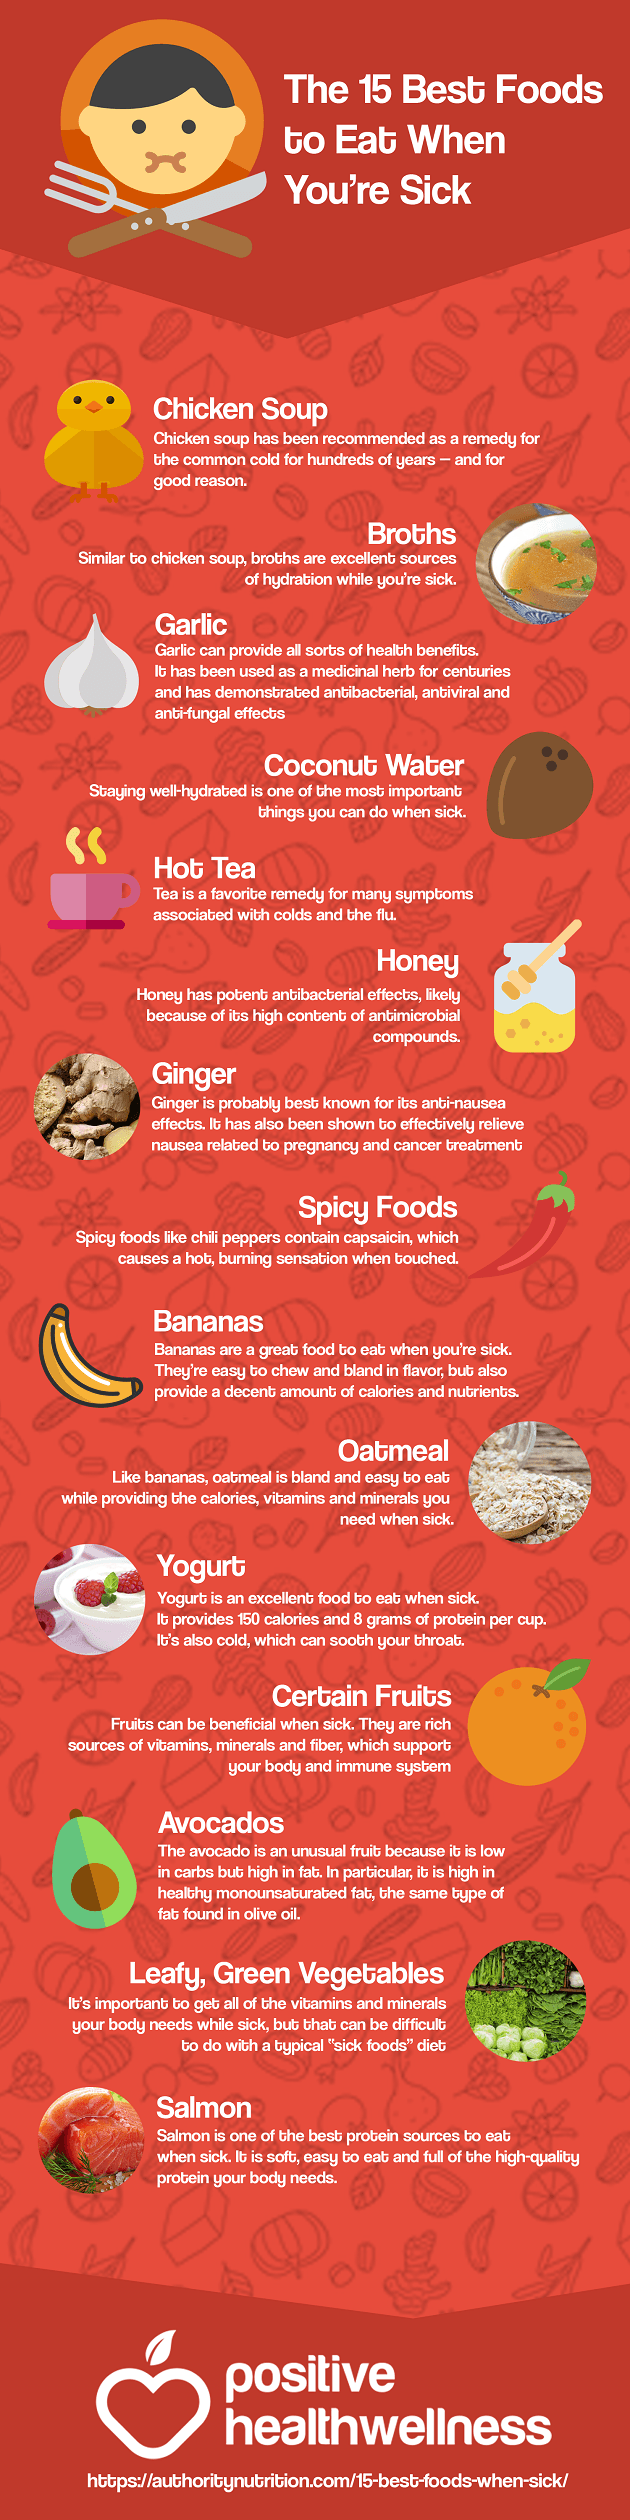 The 15 Best Foods to Eat When You